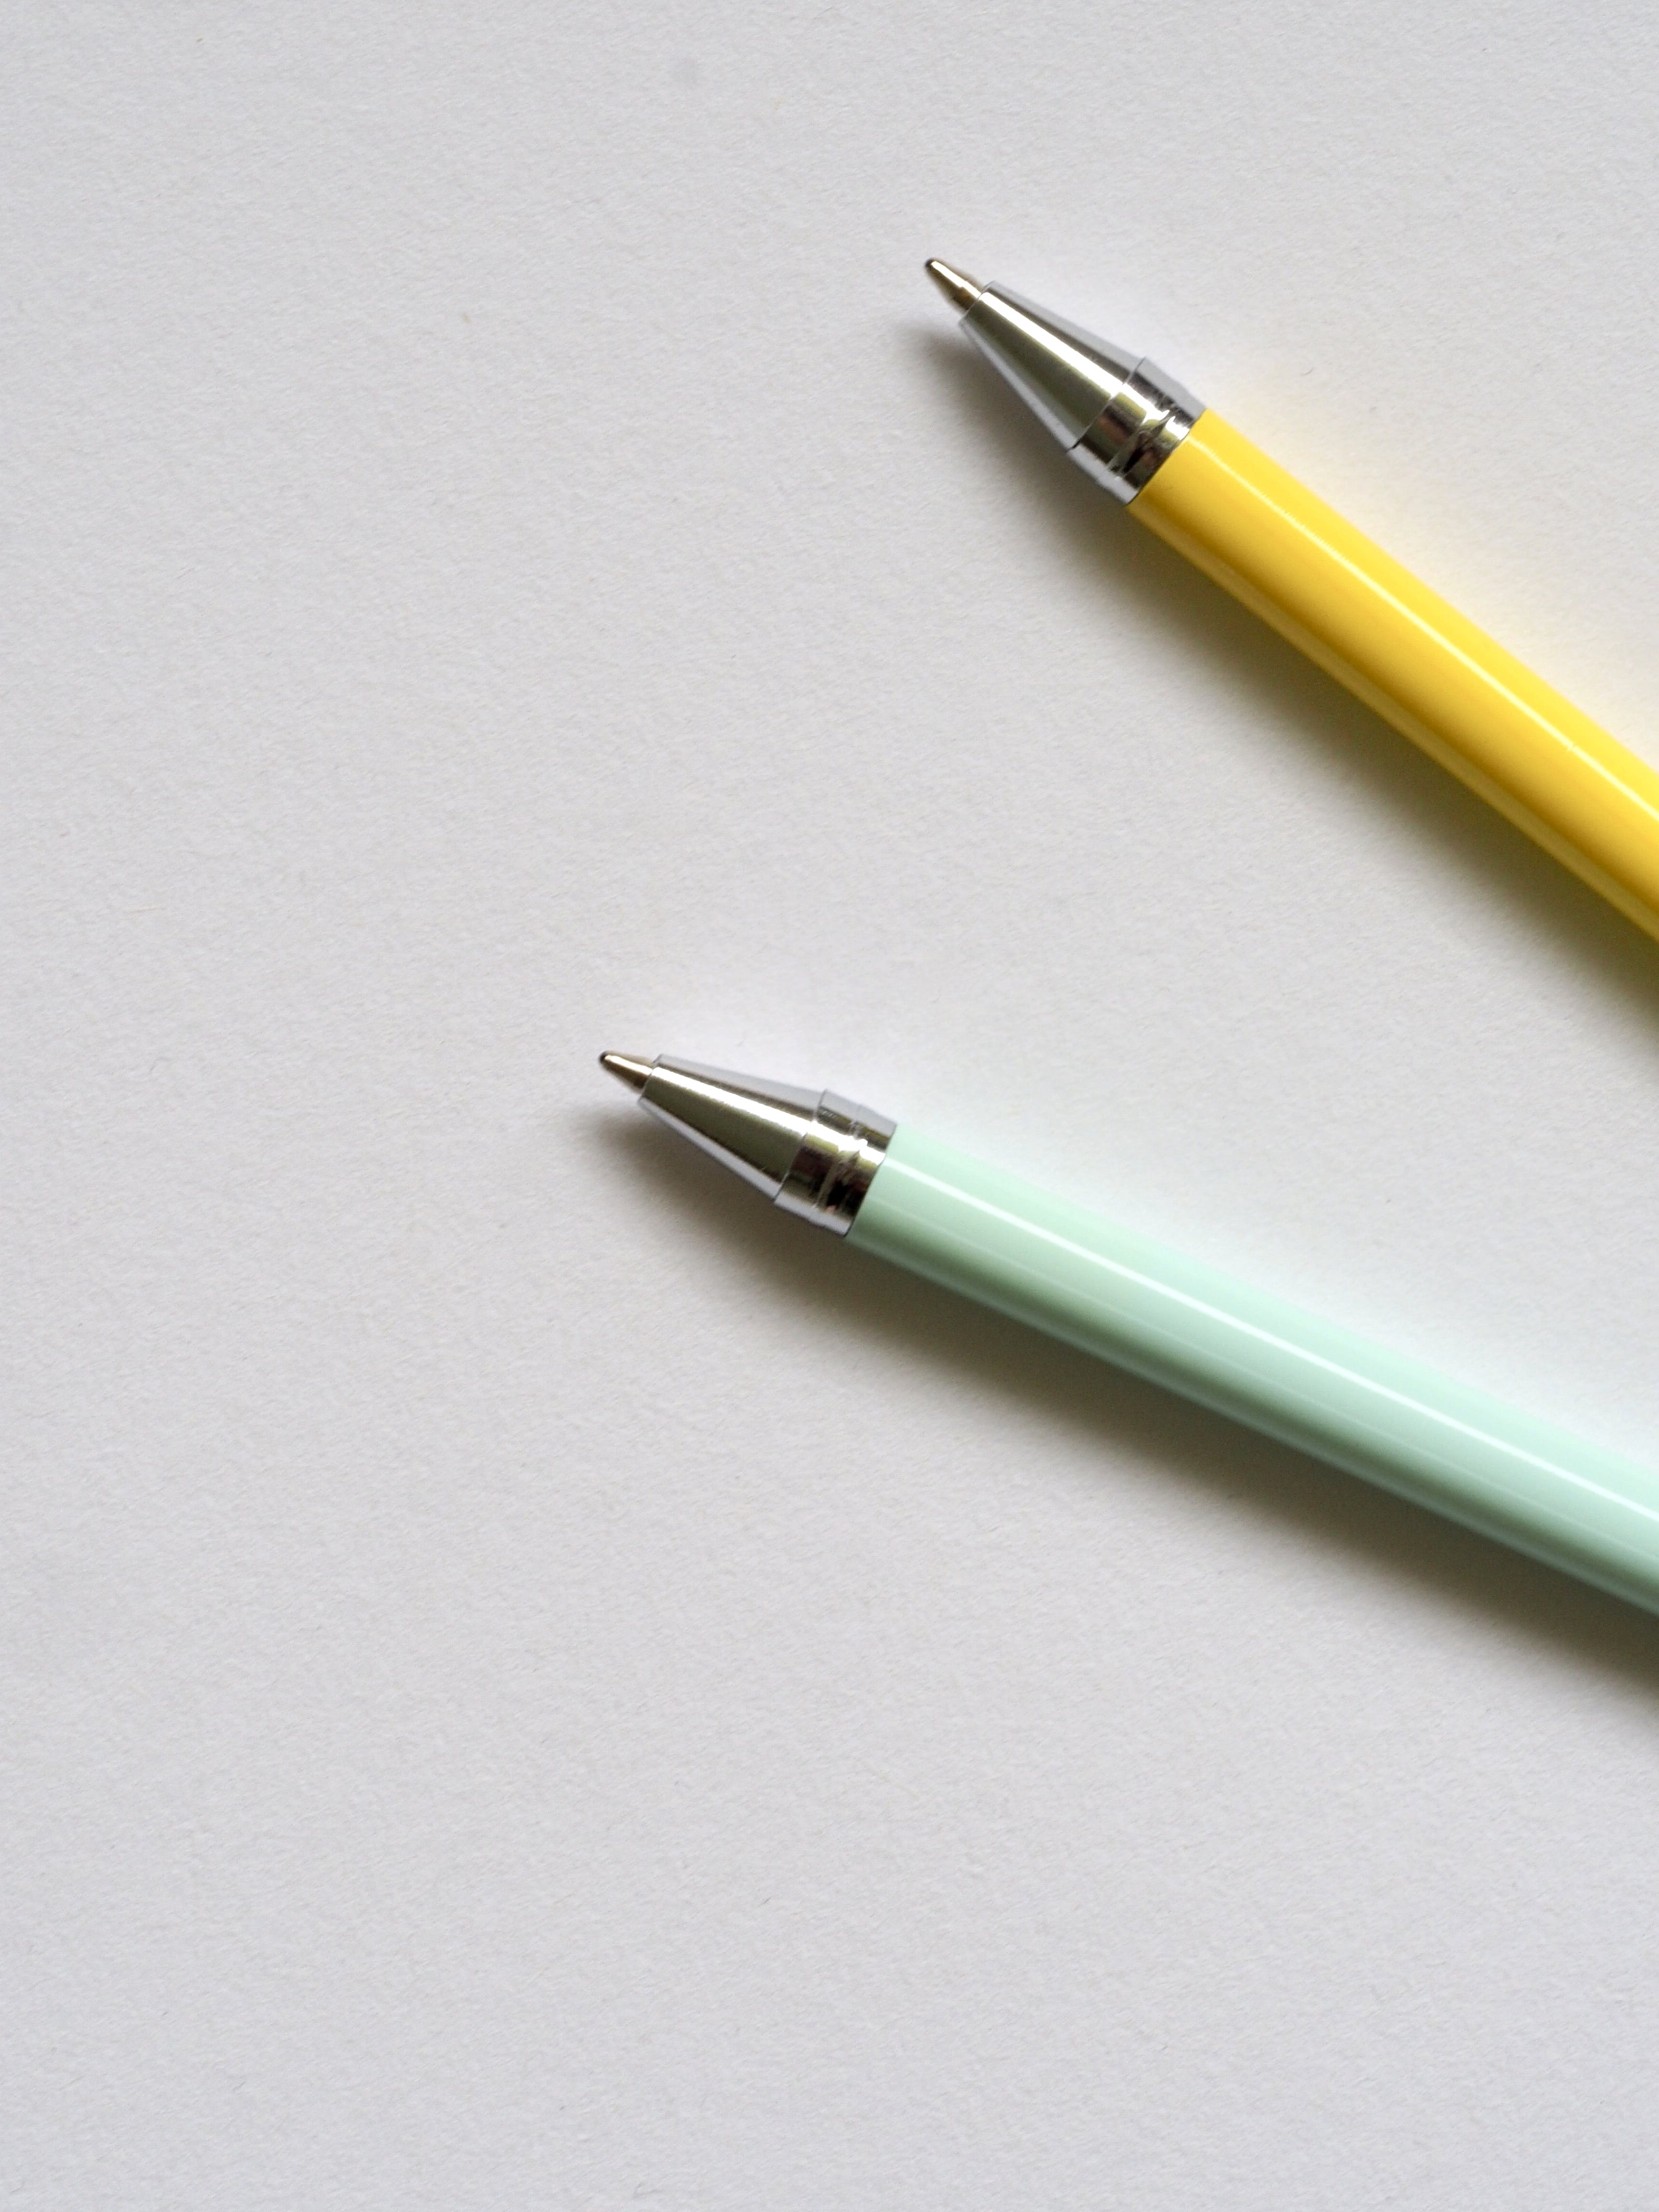 Photo of Teal and Yellow Point Pens